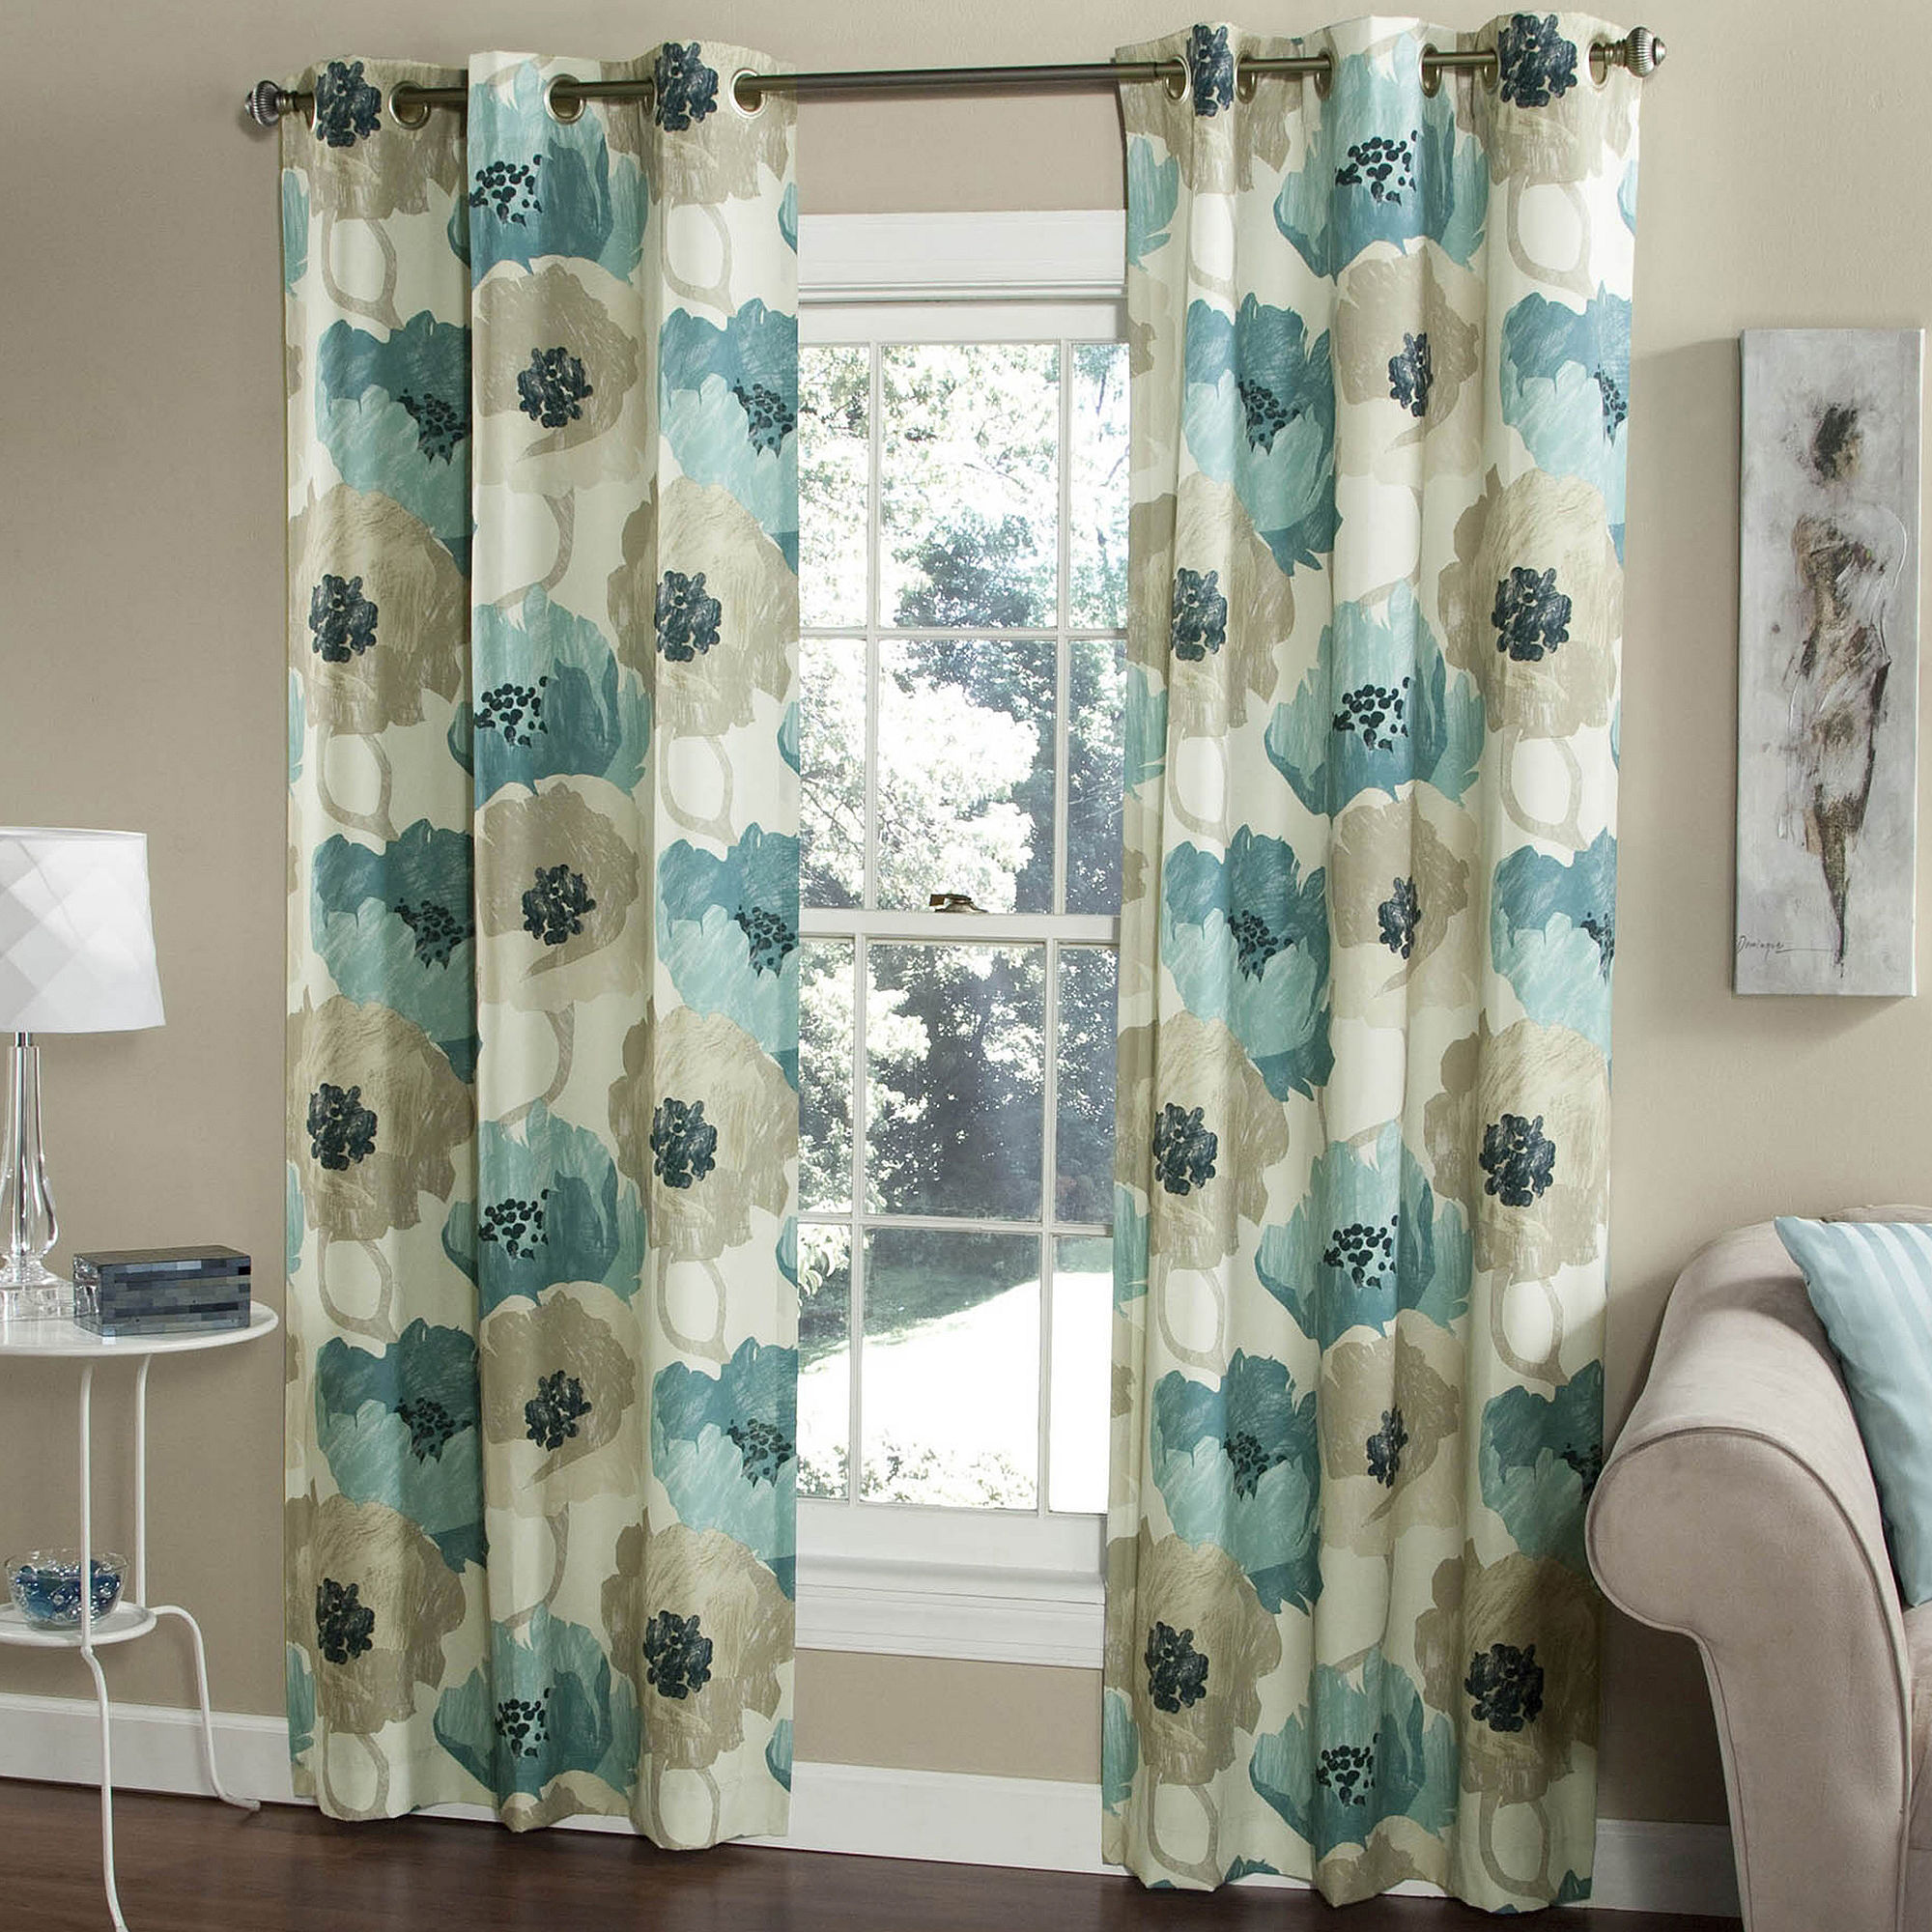 Upc 815130014335 Poppies 2 Pack Grommet Top Curtain